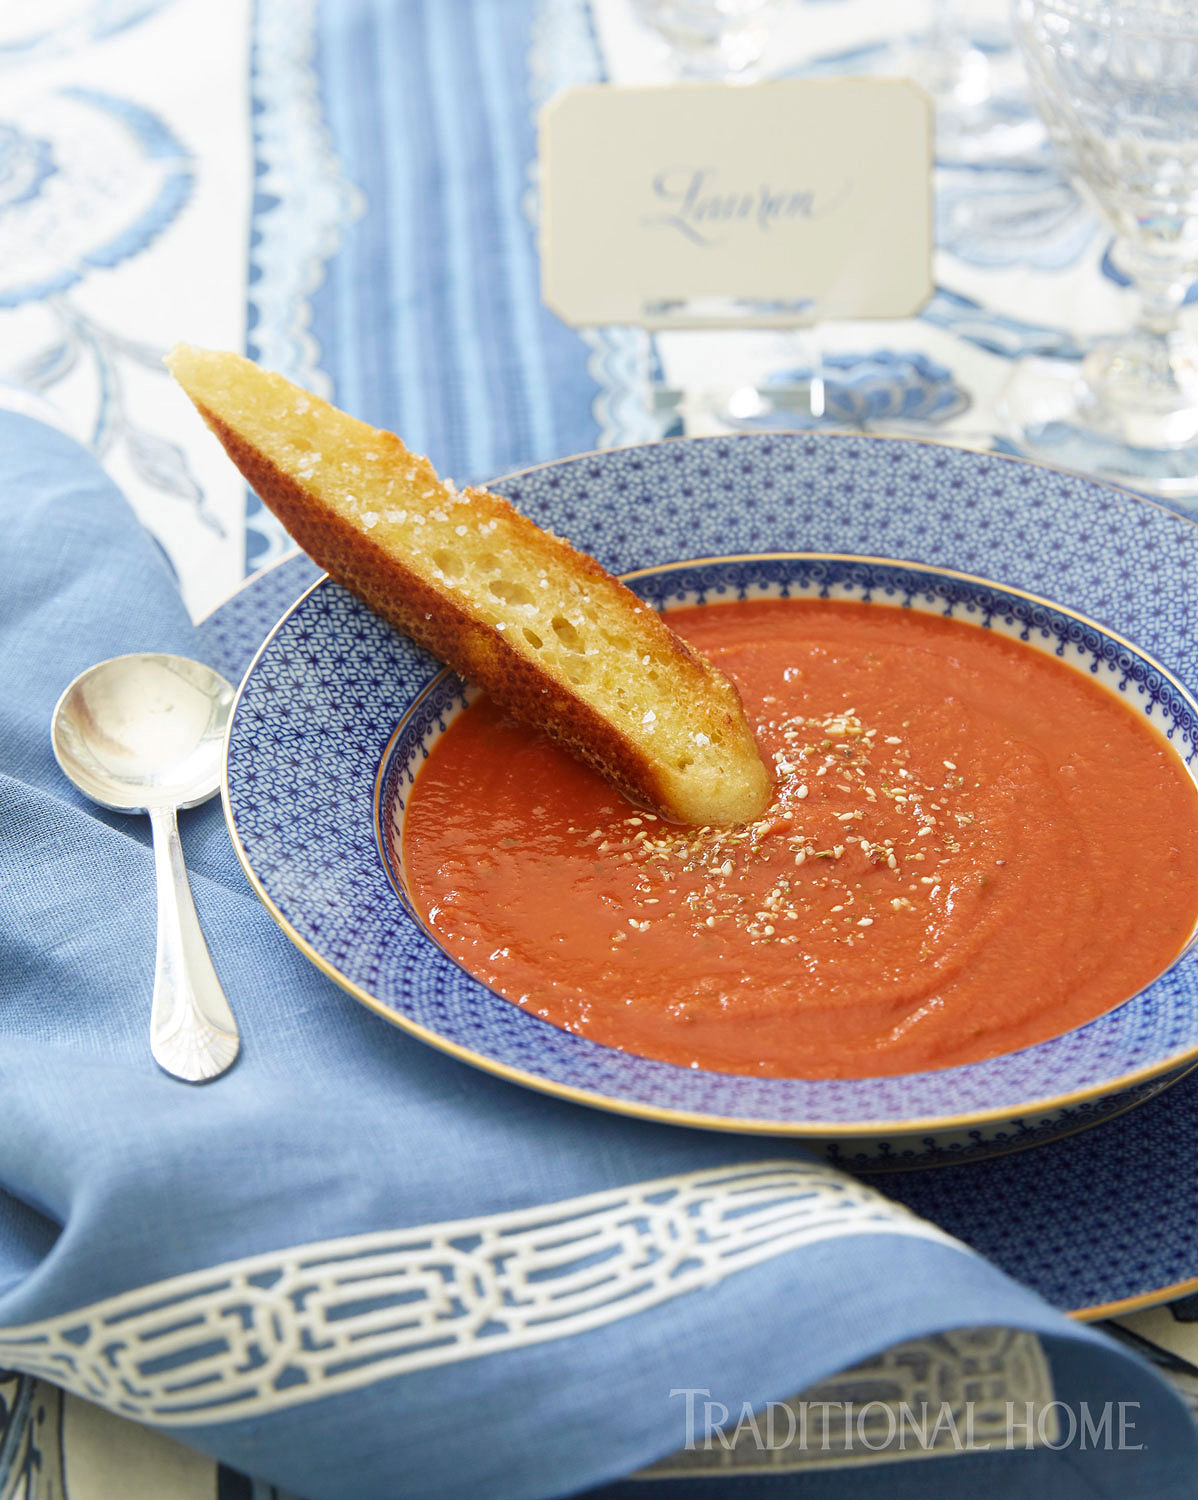 tomato and cipollini onion soup with dukkah spice blend